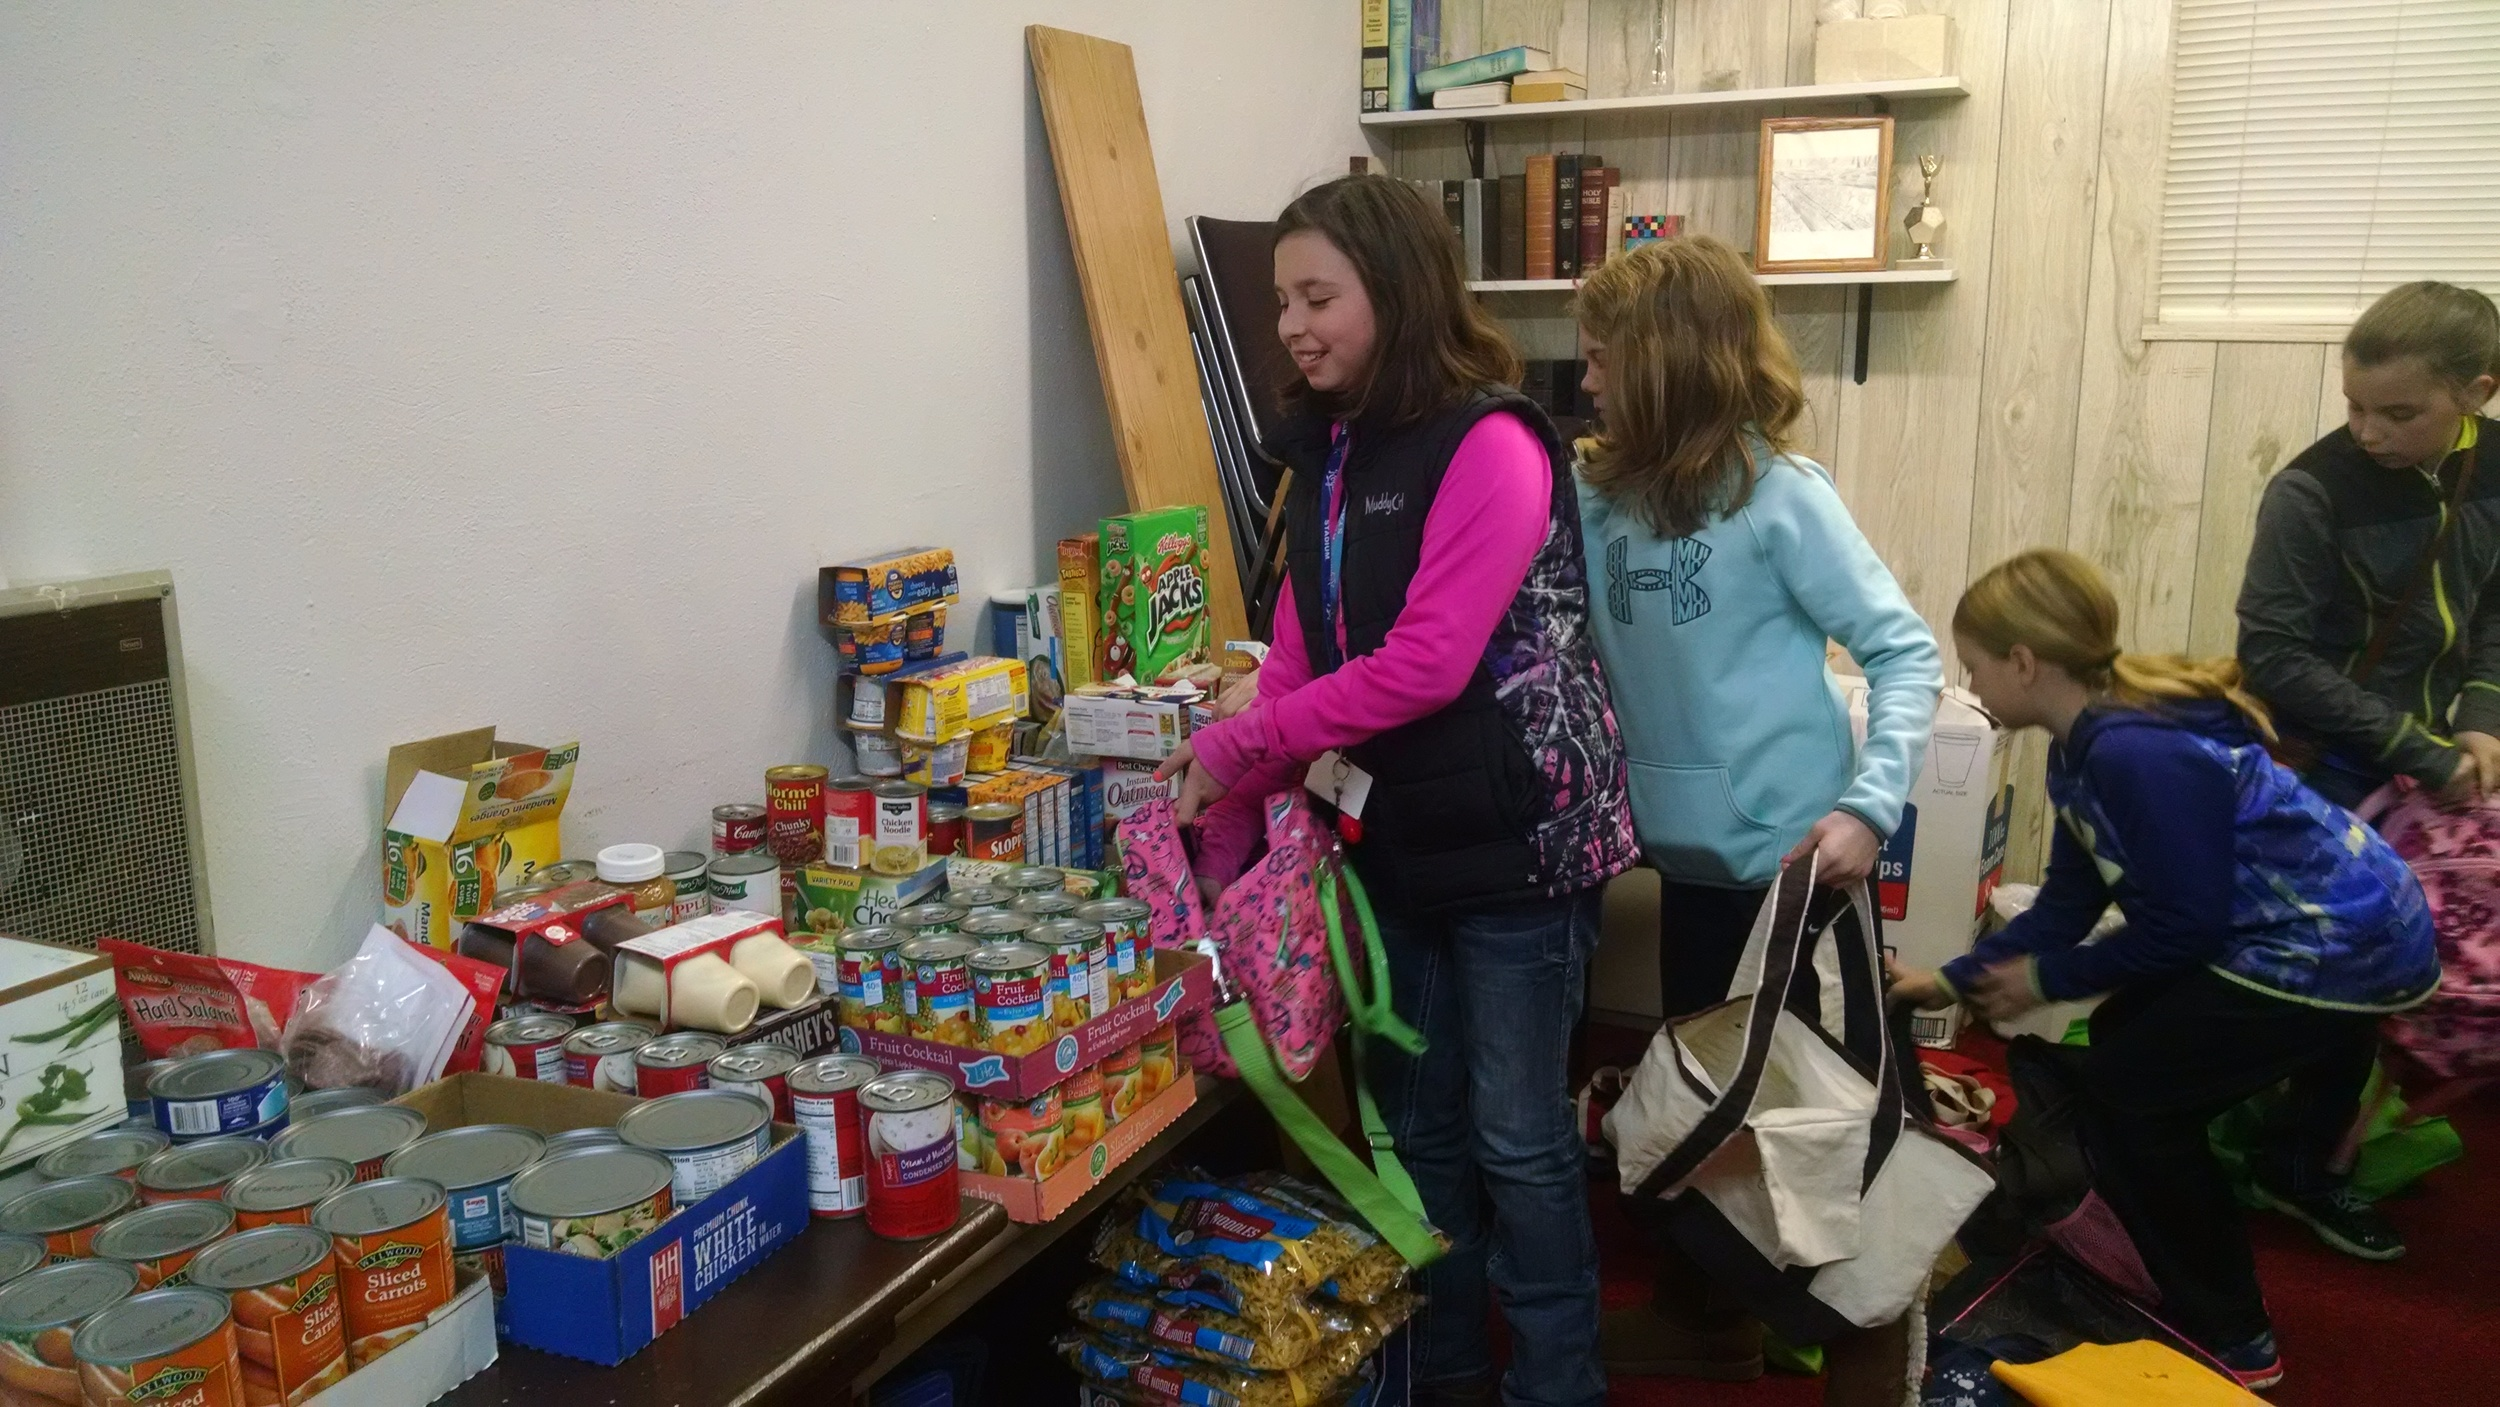 Youth of the church help pack the bags.